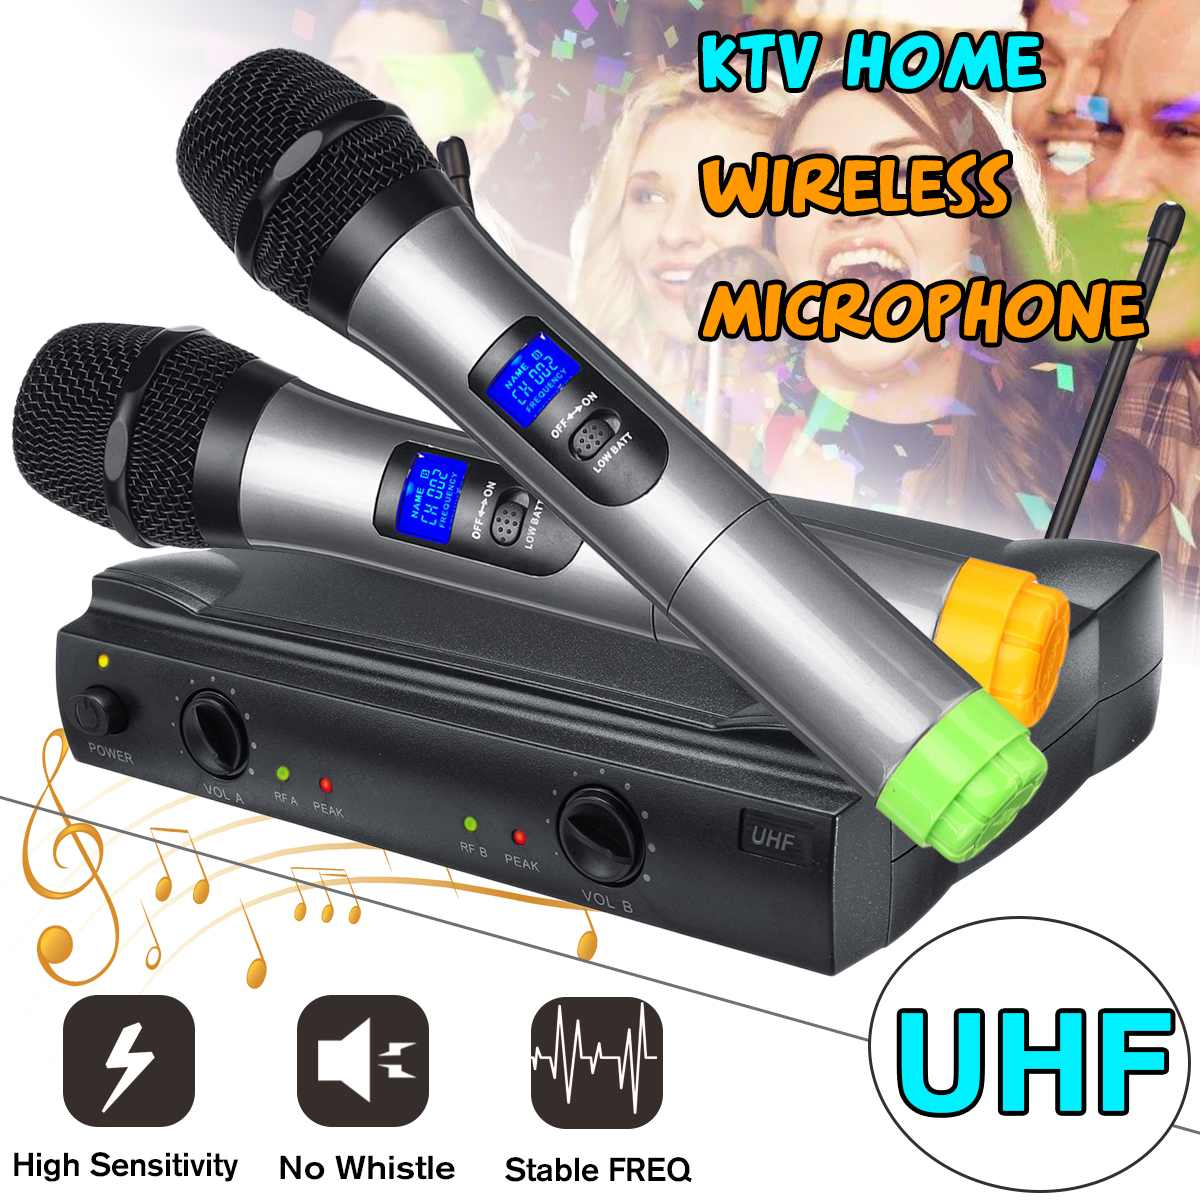 UHF Long Range Dual Channel 2 Handheld Mic Transmitter Professional Karaoke Stage Speakers UHF Wireless Microphone SystemUHF Long Range Dual Channel 2 Handheld Mic Transmitter Professional Karaoke Stage Speakers UHF Wireless Microphone System